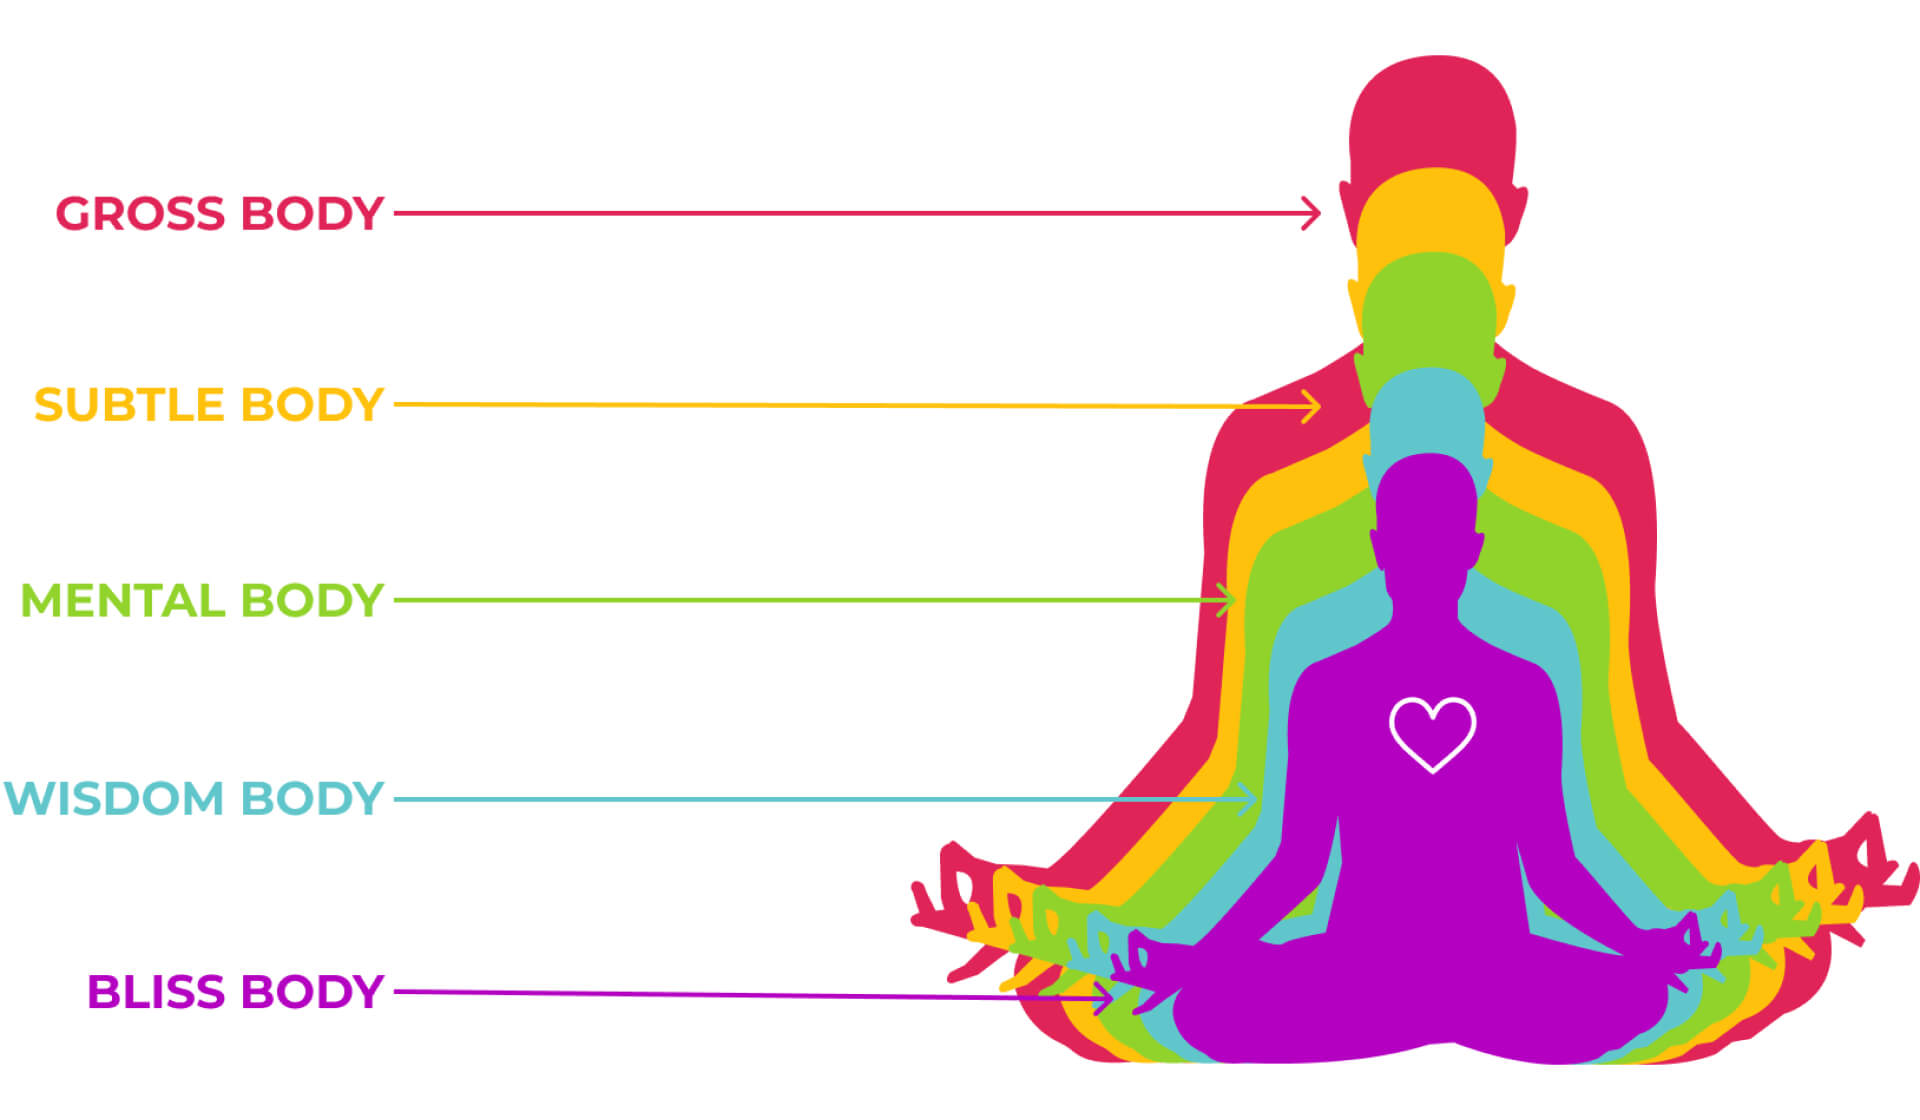 Colorful illustration of a person sitting in meditation, representing the five layers of the koshas